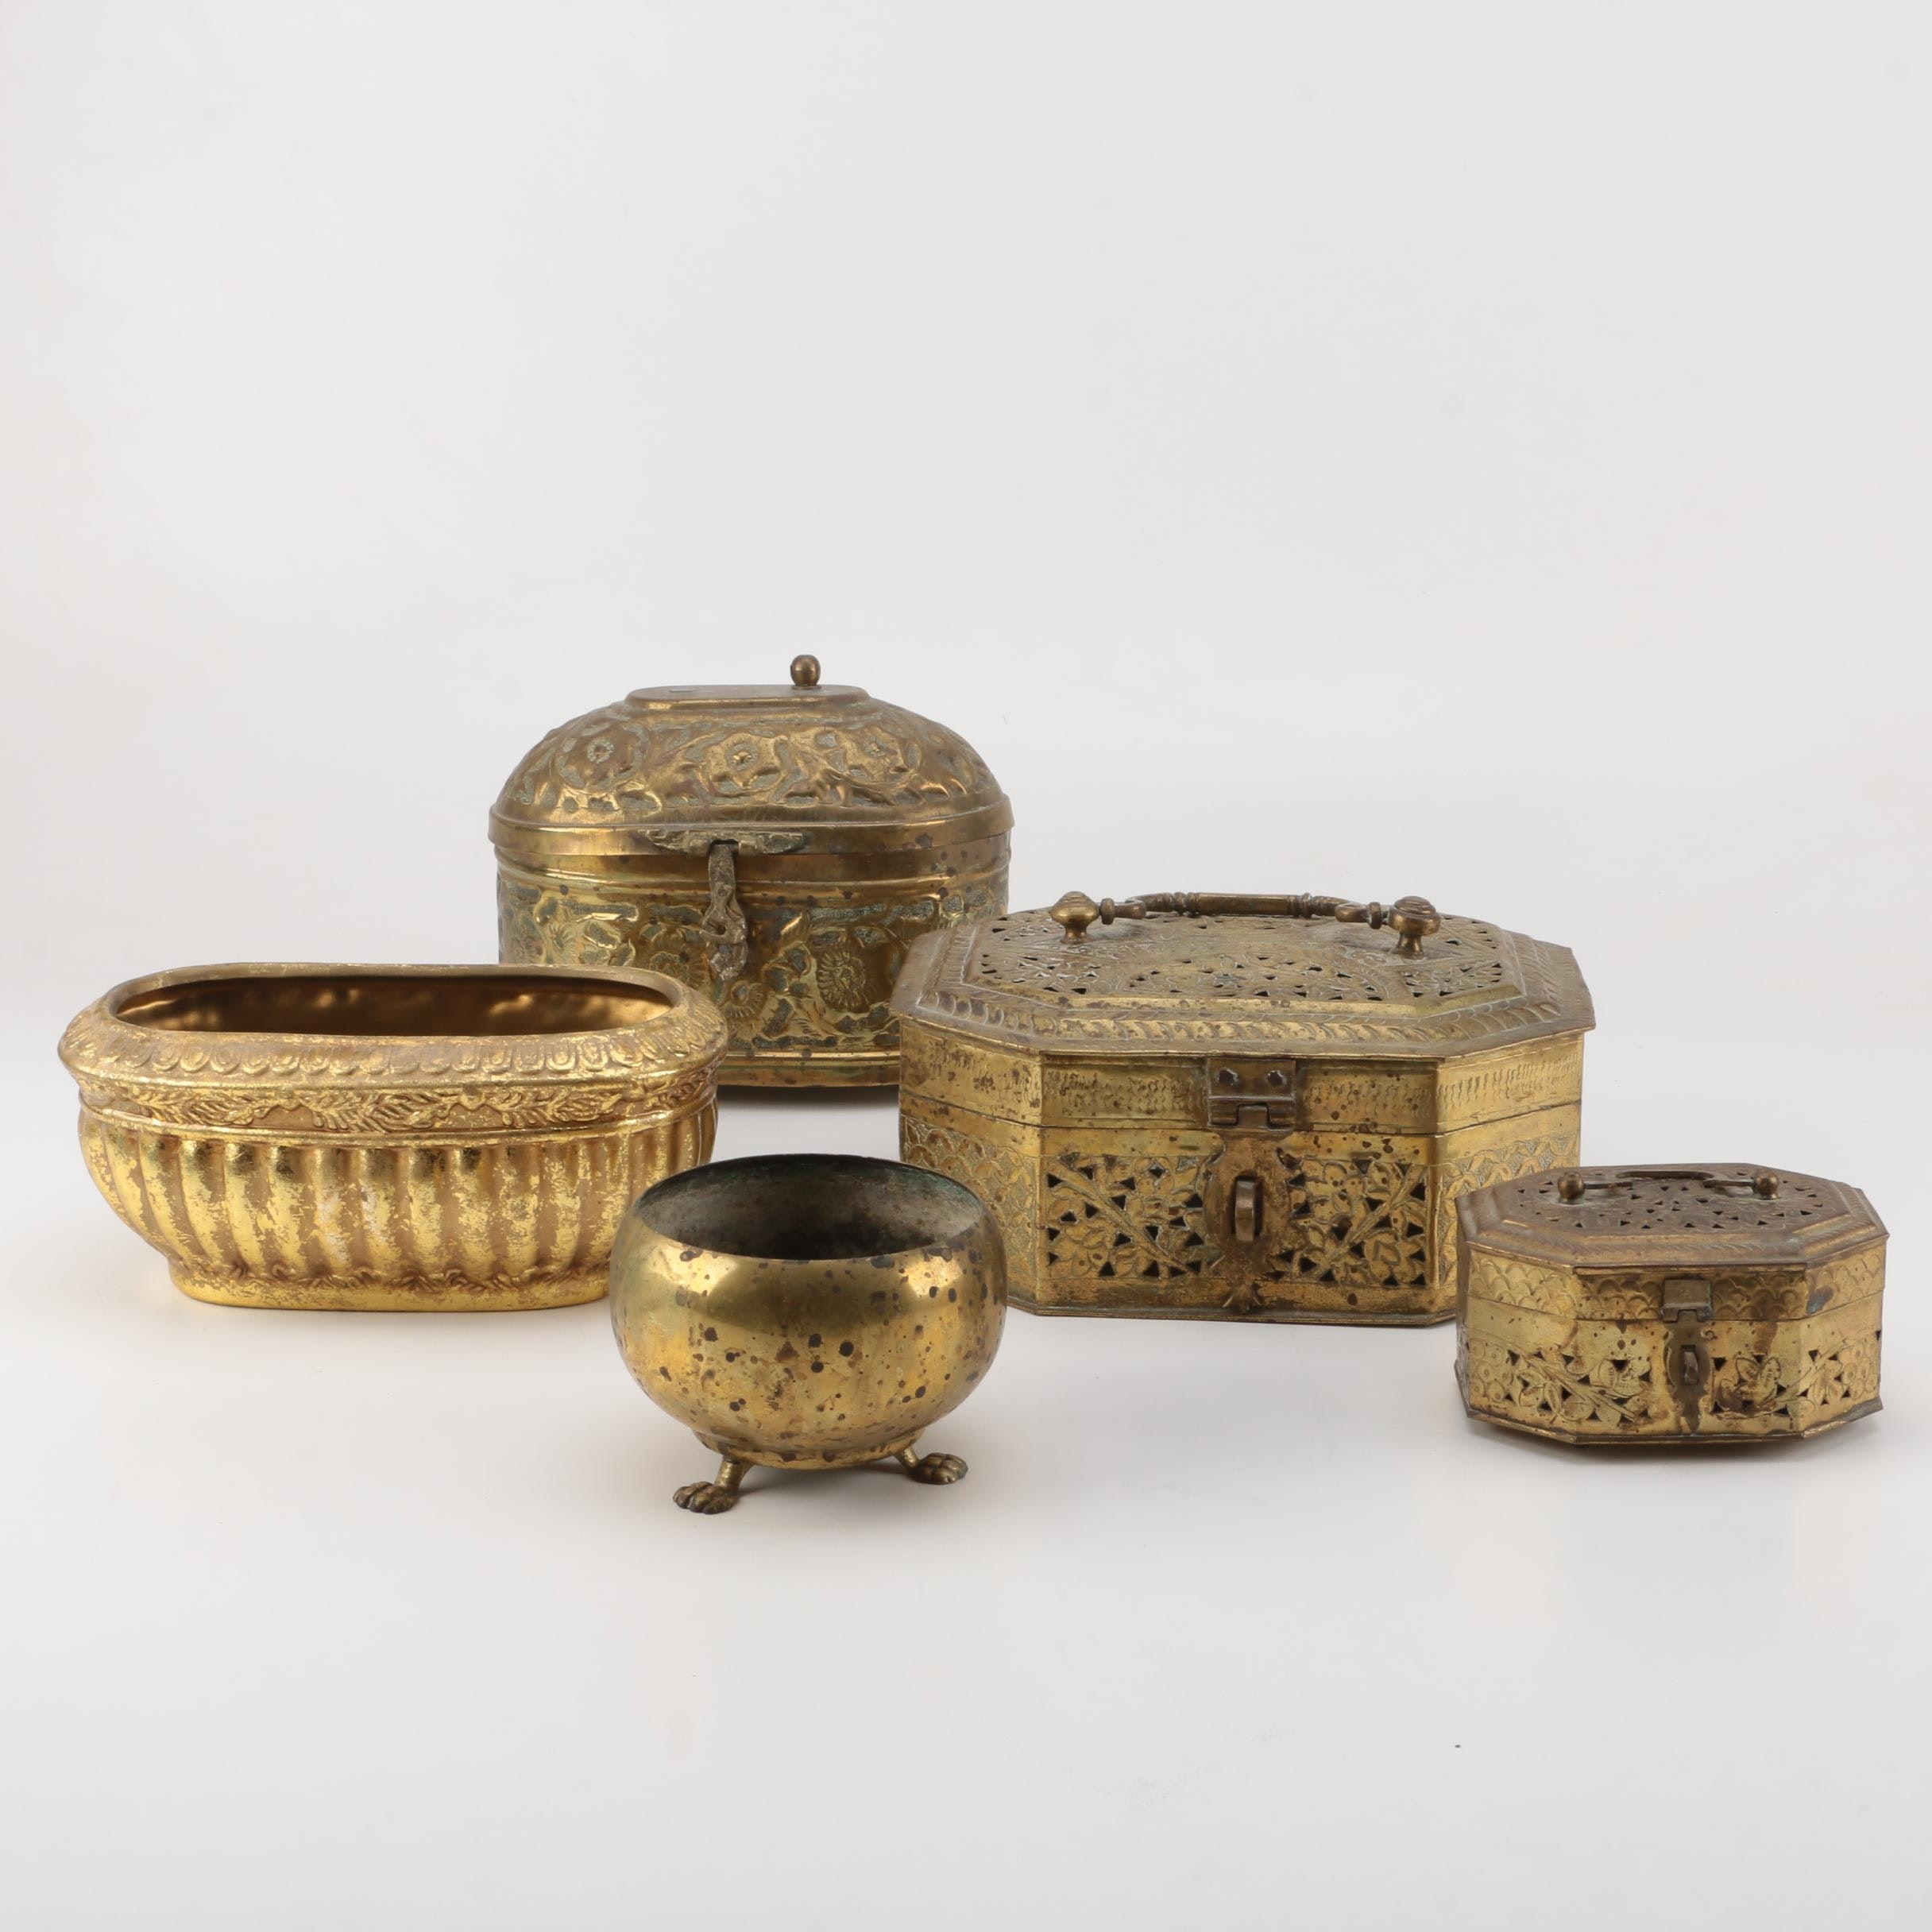 Brass Open Work Decorative Boxes and Assorted Decor